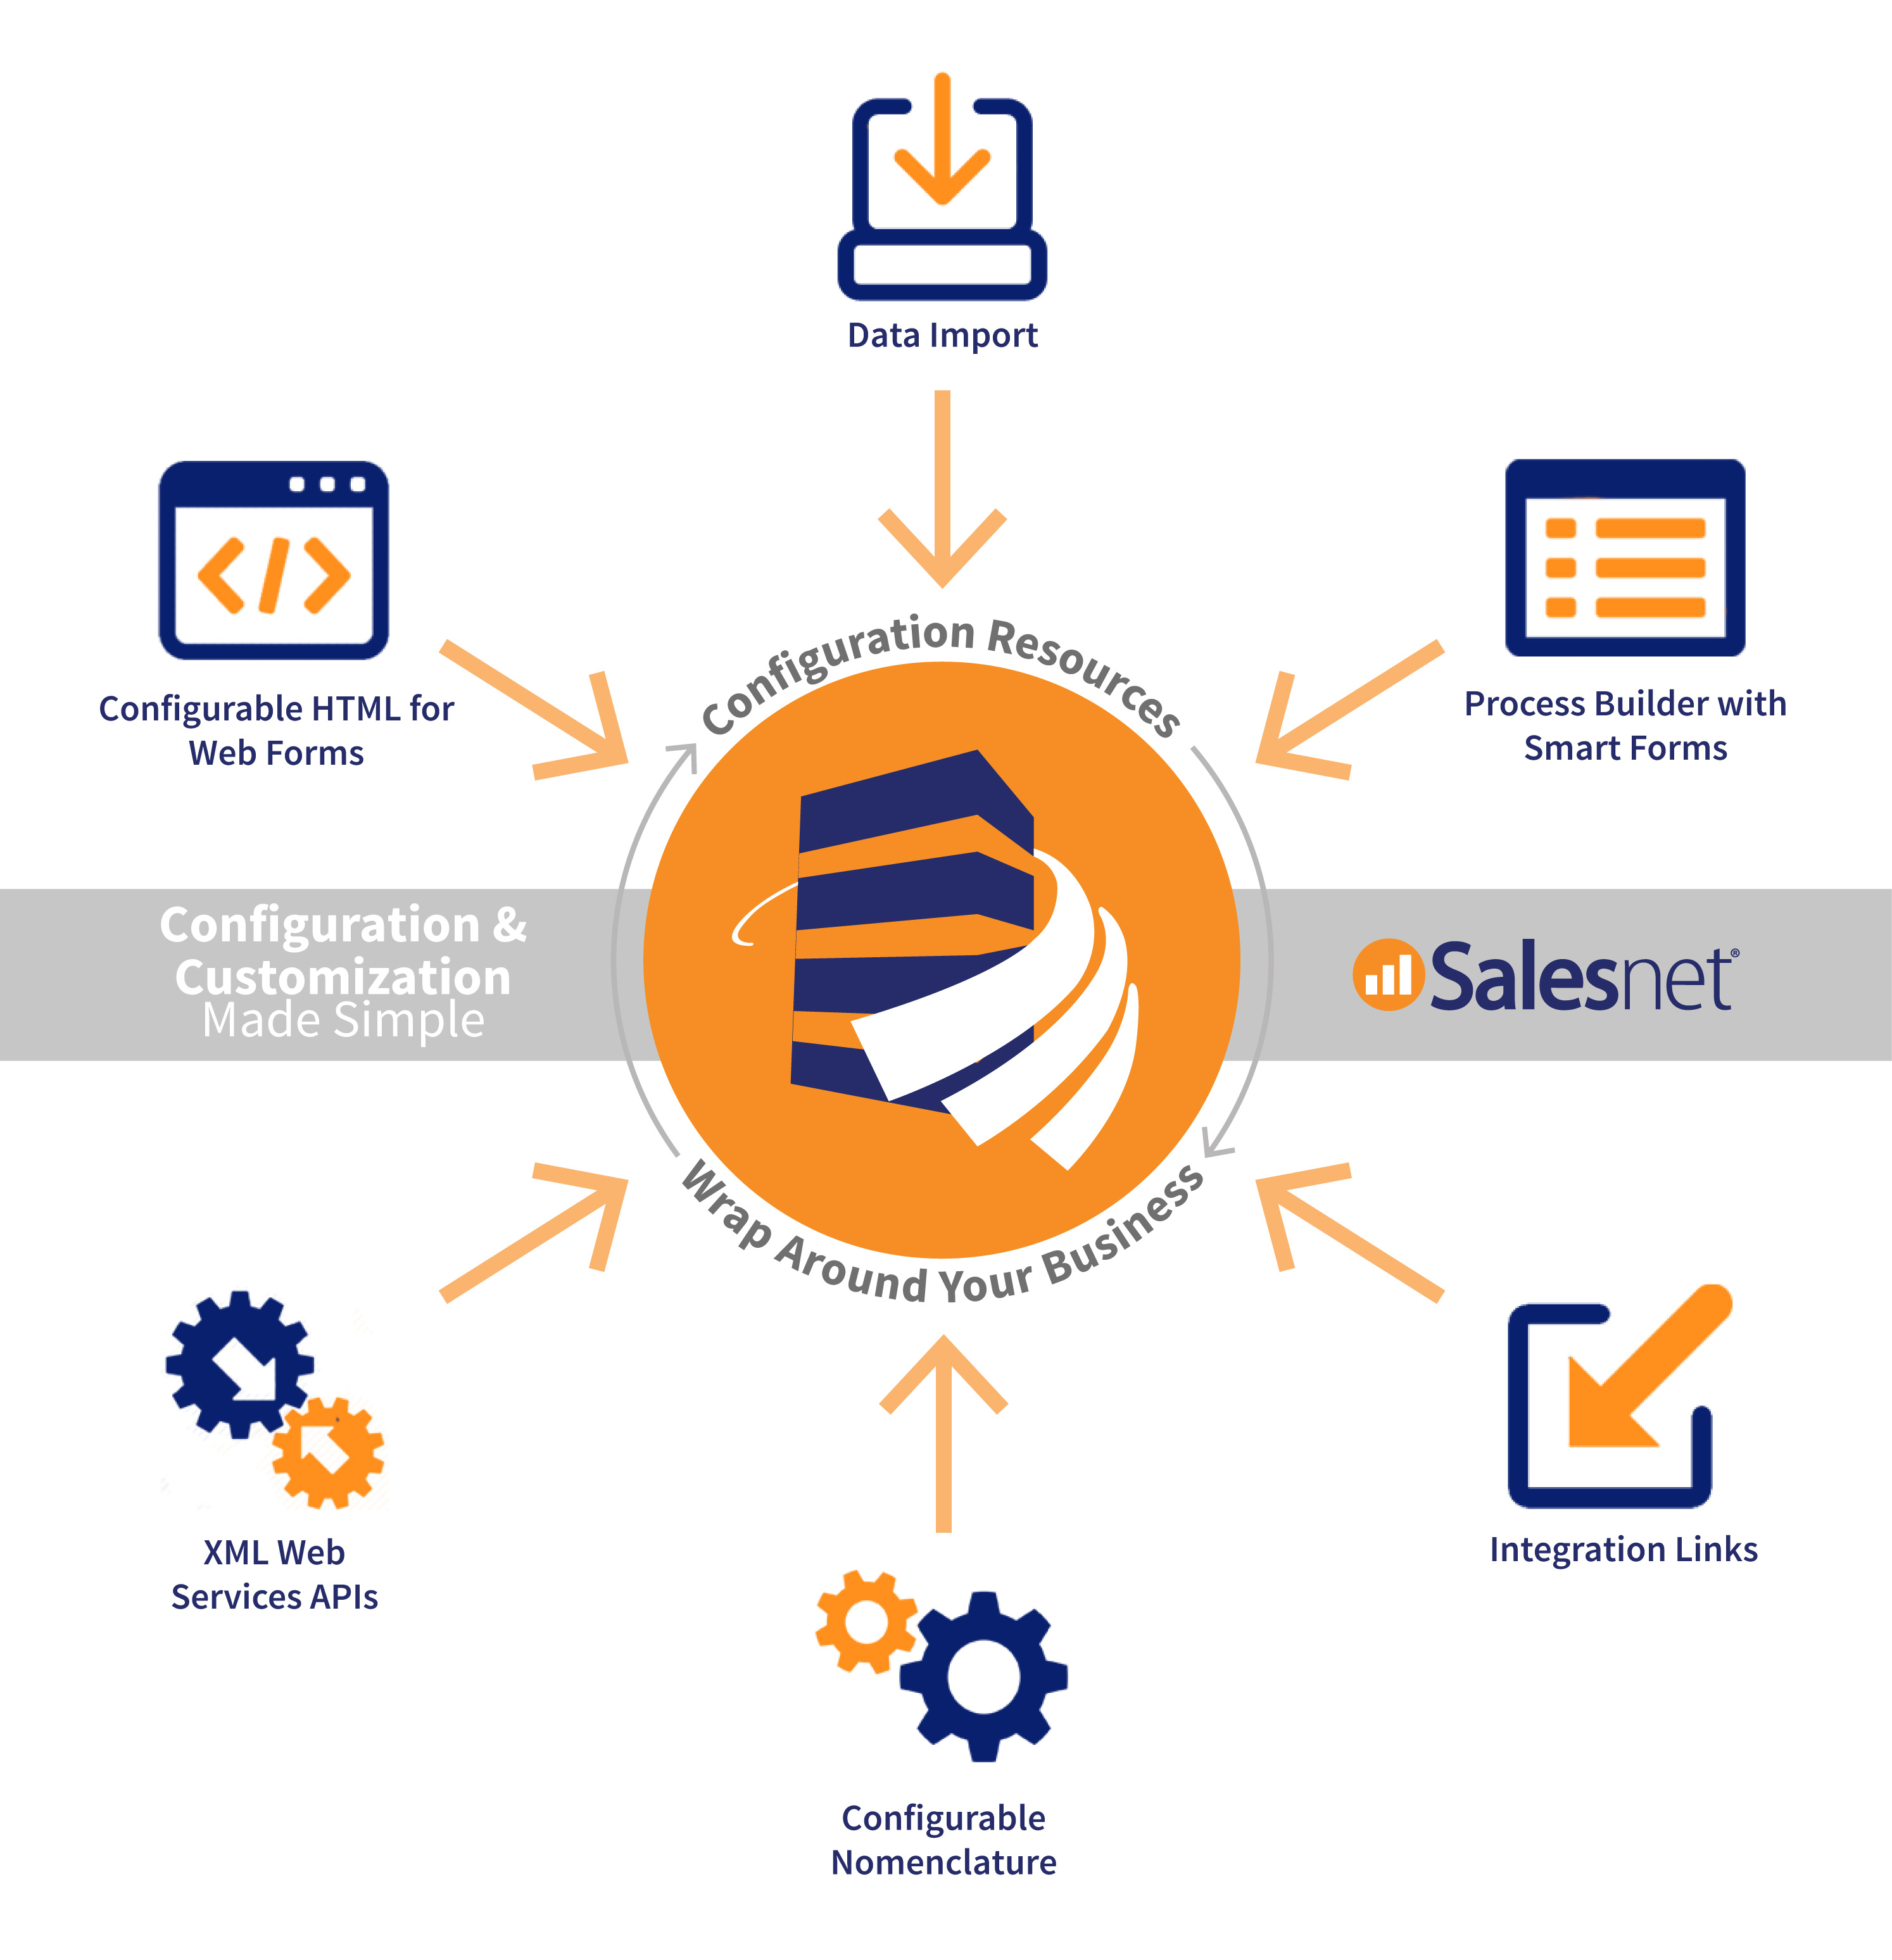 Salesnet Demo - Configuration & Customization Made Simple